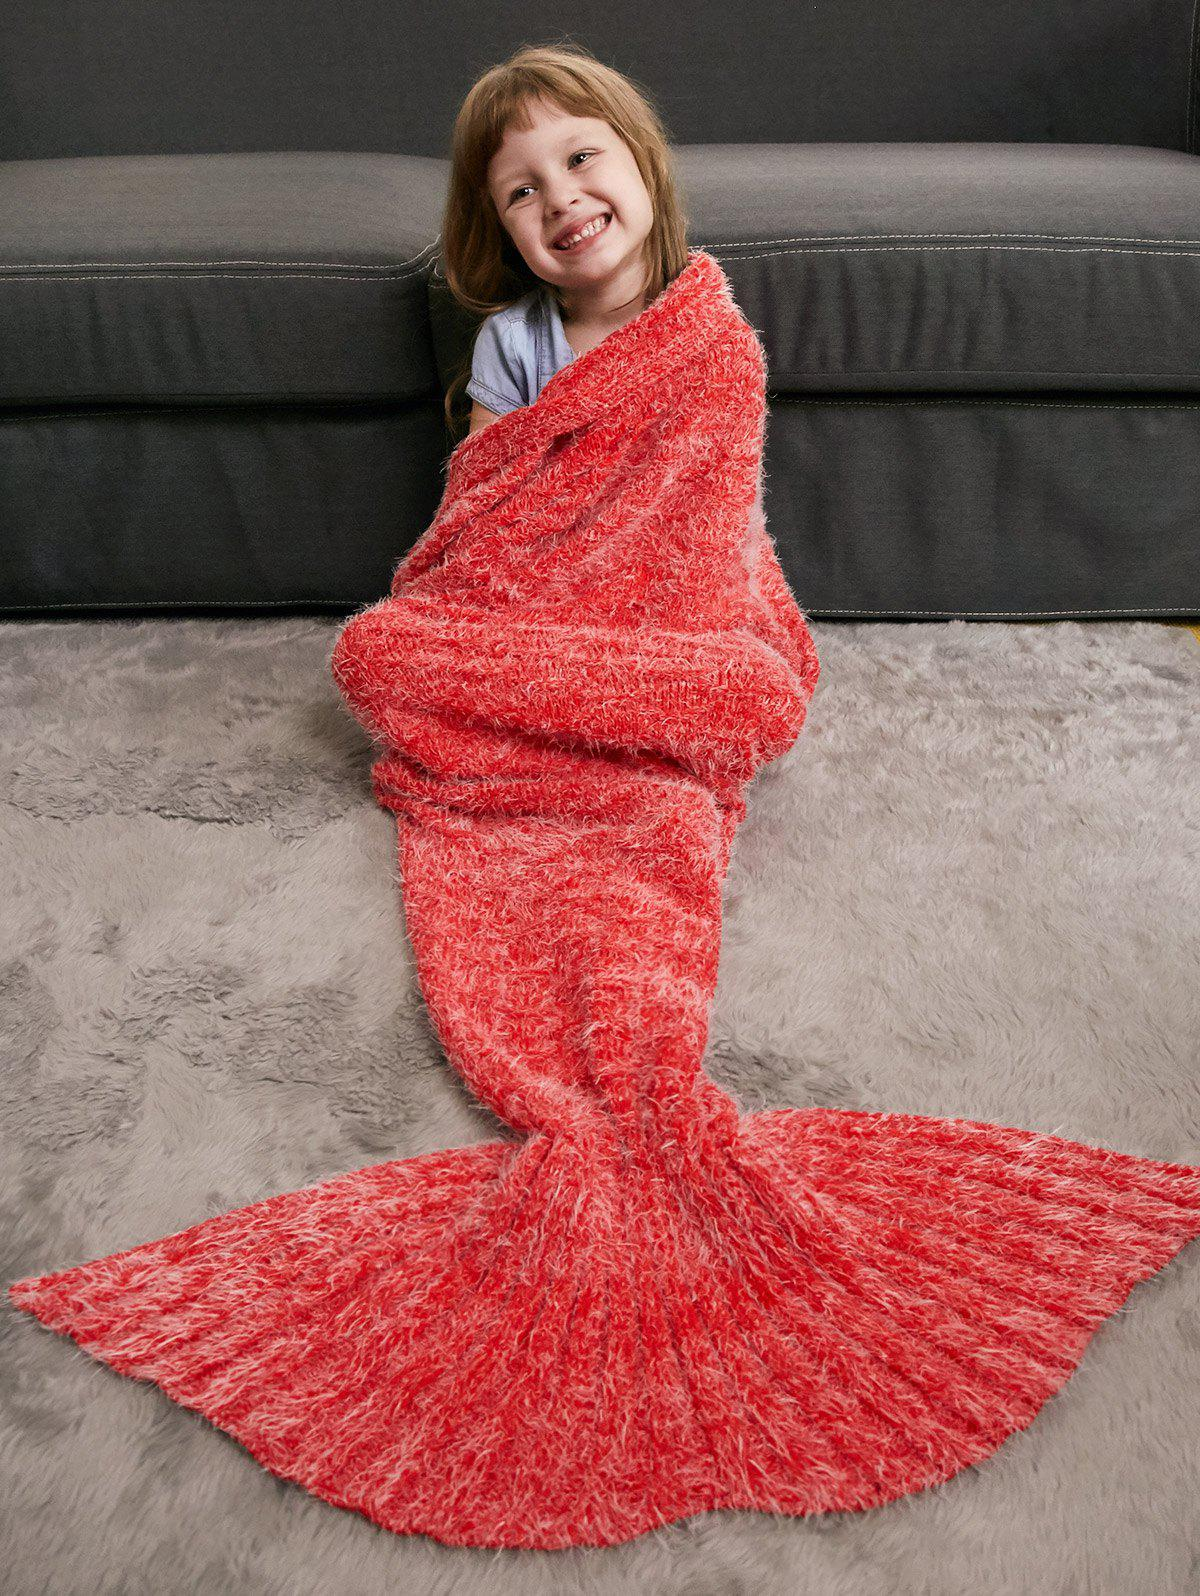 Crochet Tricoté Faux Mohair Mermaid Blanket Throw For Kids - Tangerine